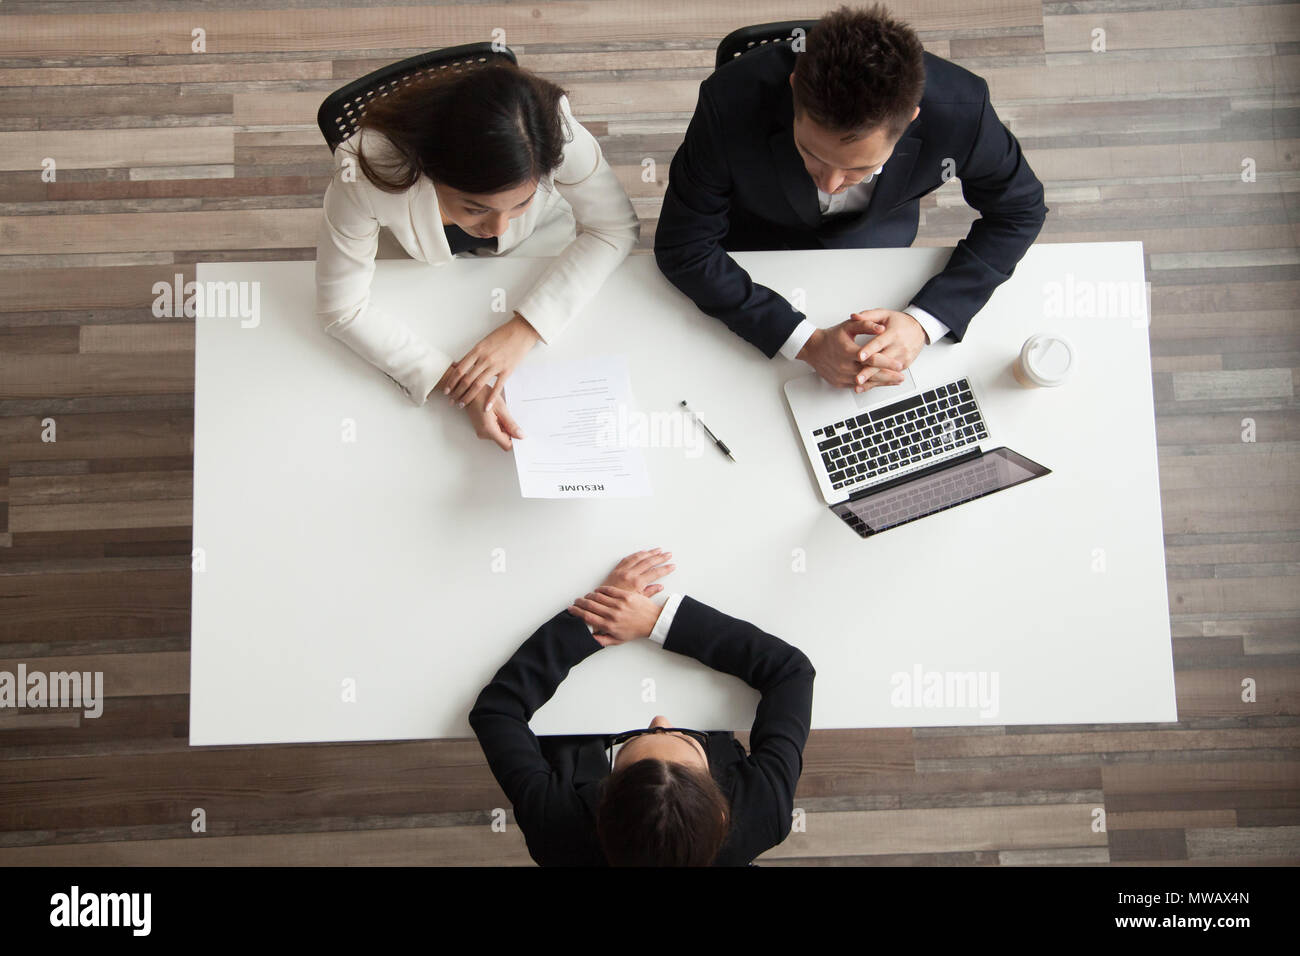 Hr managers interviewing female job applicant, top view from abo - Stock Image